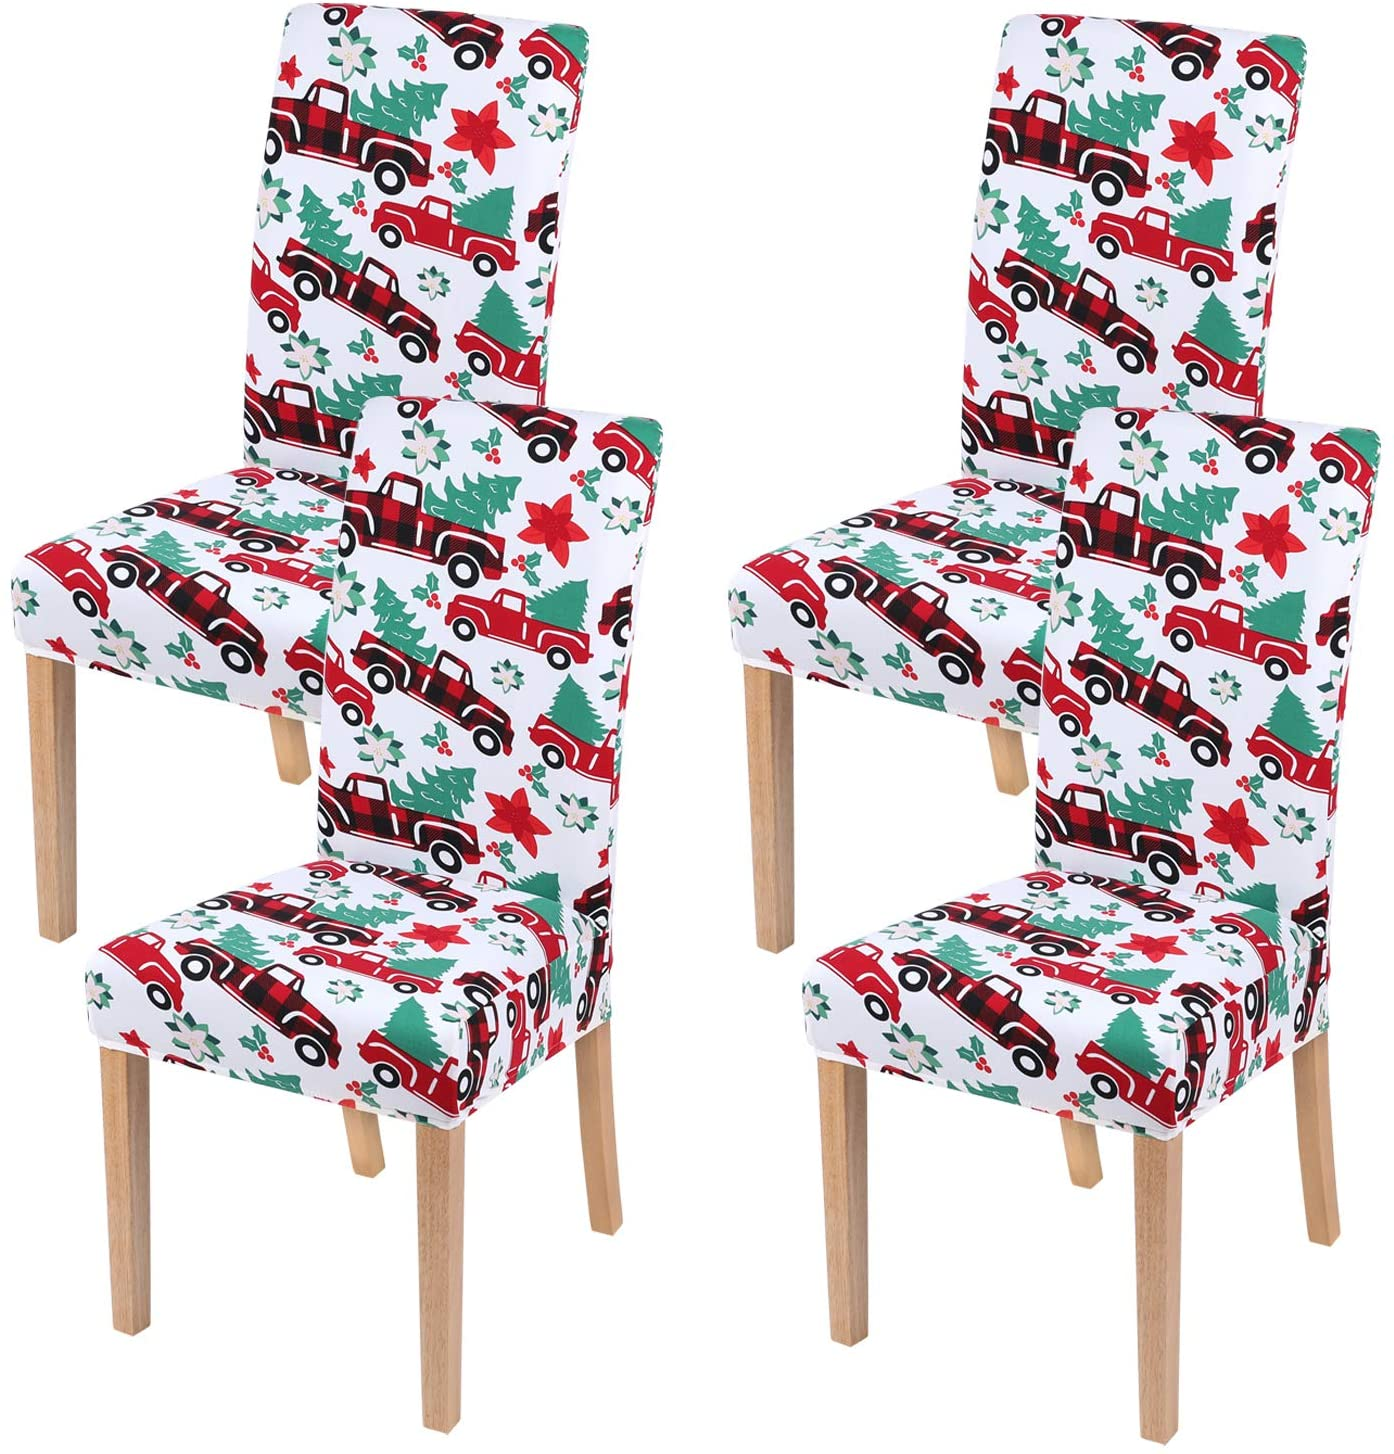 smiry Stretch Printed Dining Chair Covers, Spandex Removable Washable Dining Chair Protector Slipcovers for Home, Kitchen, Party, Restaurant - Set of 4, Red Car